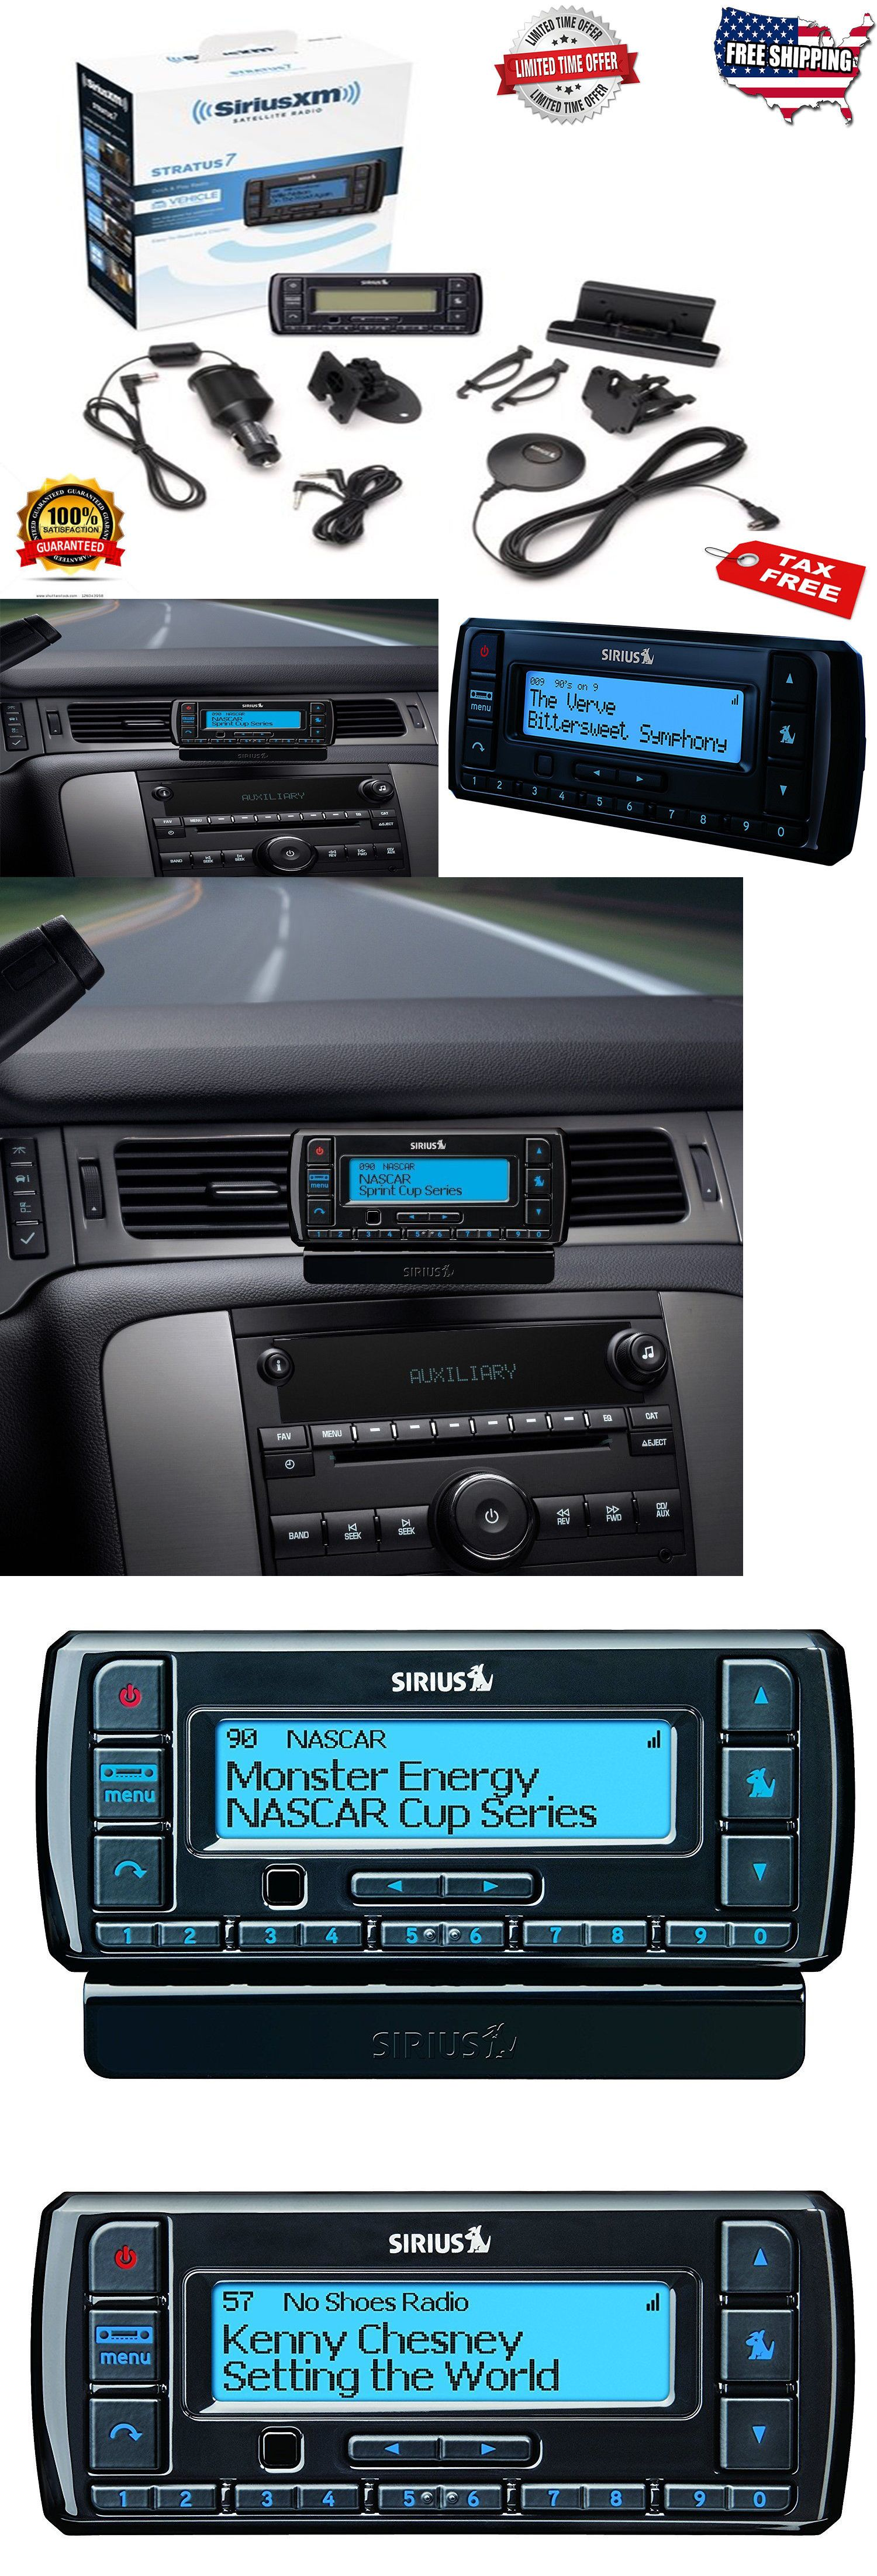 Other Car Audio 175717 Sirius Xm Satellite Radio Stratus 7 With Clarion 16 Pin Stereo Wiring Wire Harness Ebay Vehicle Kit For